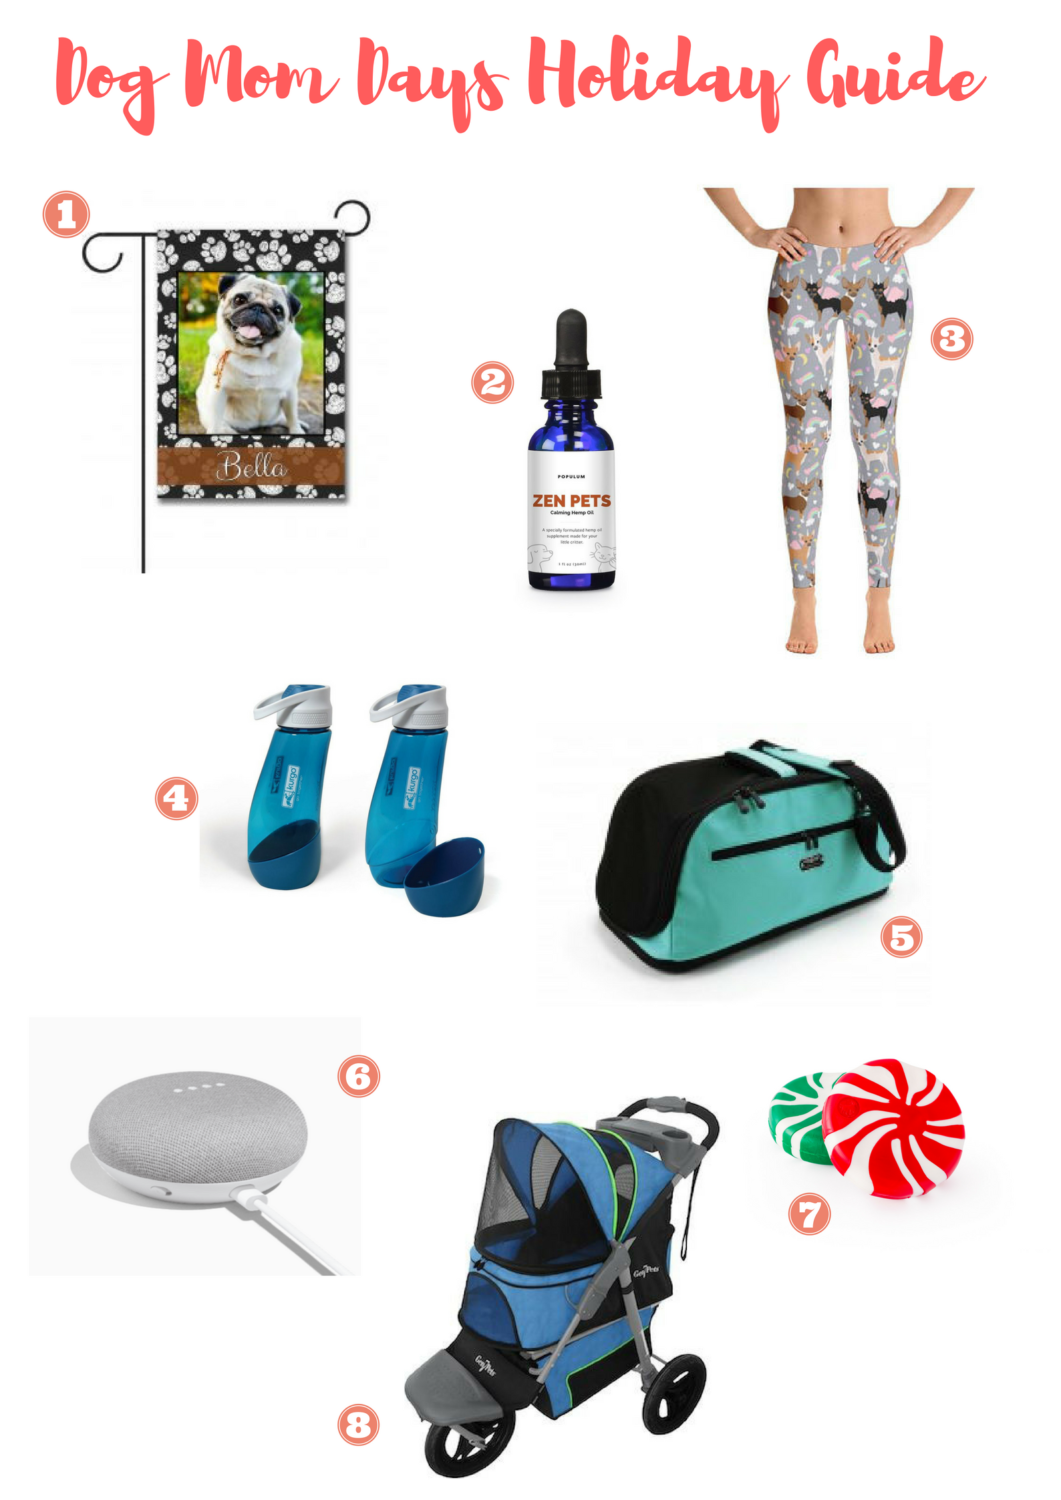 Dog Mom Days holiday gift guide